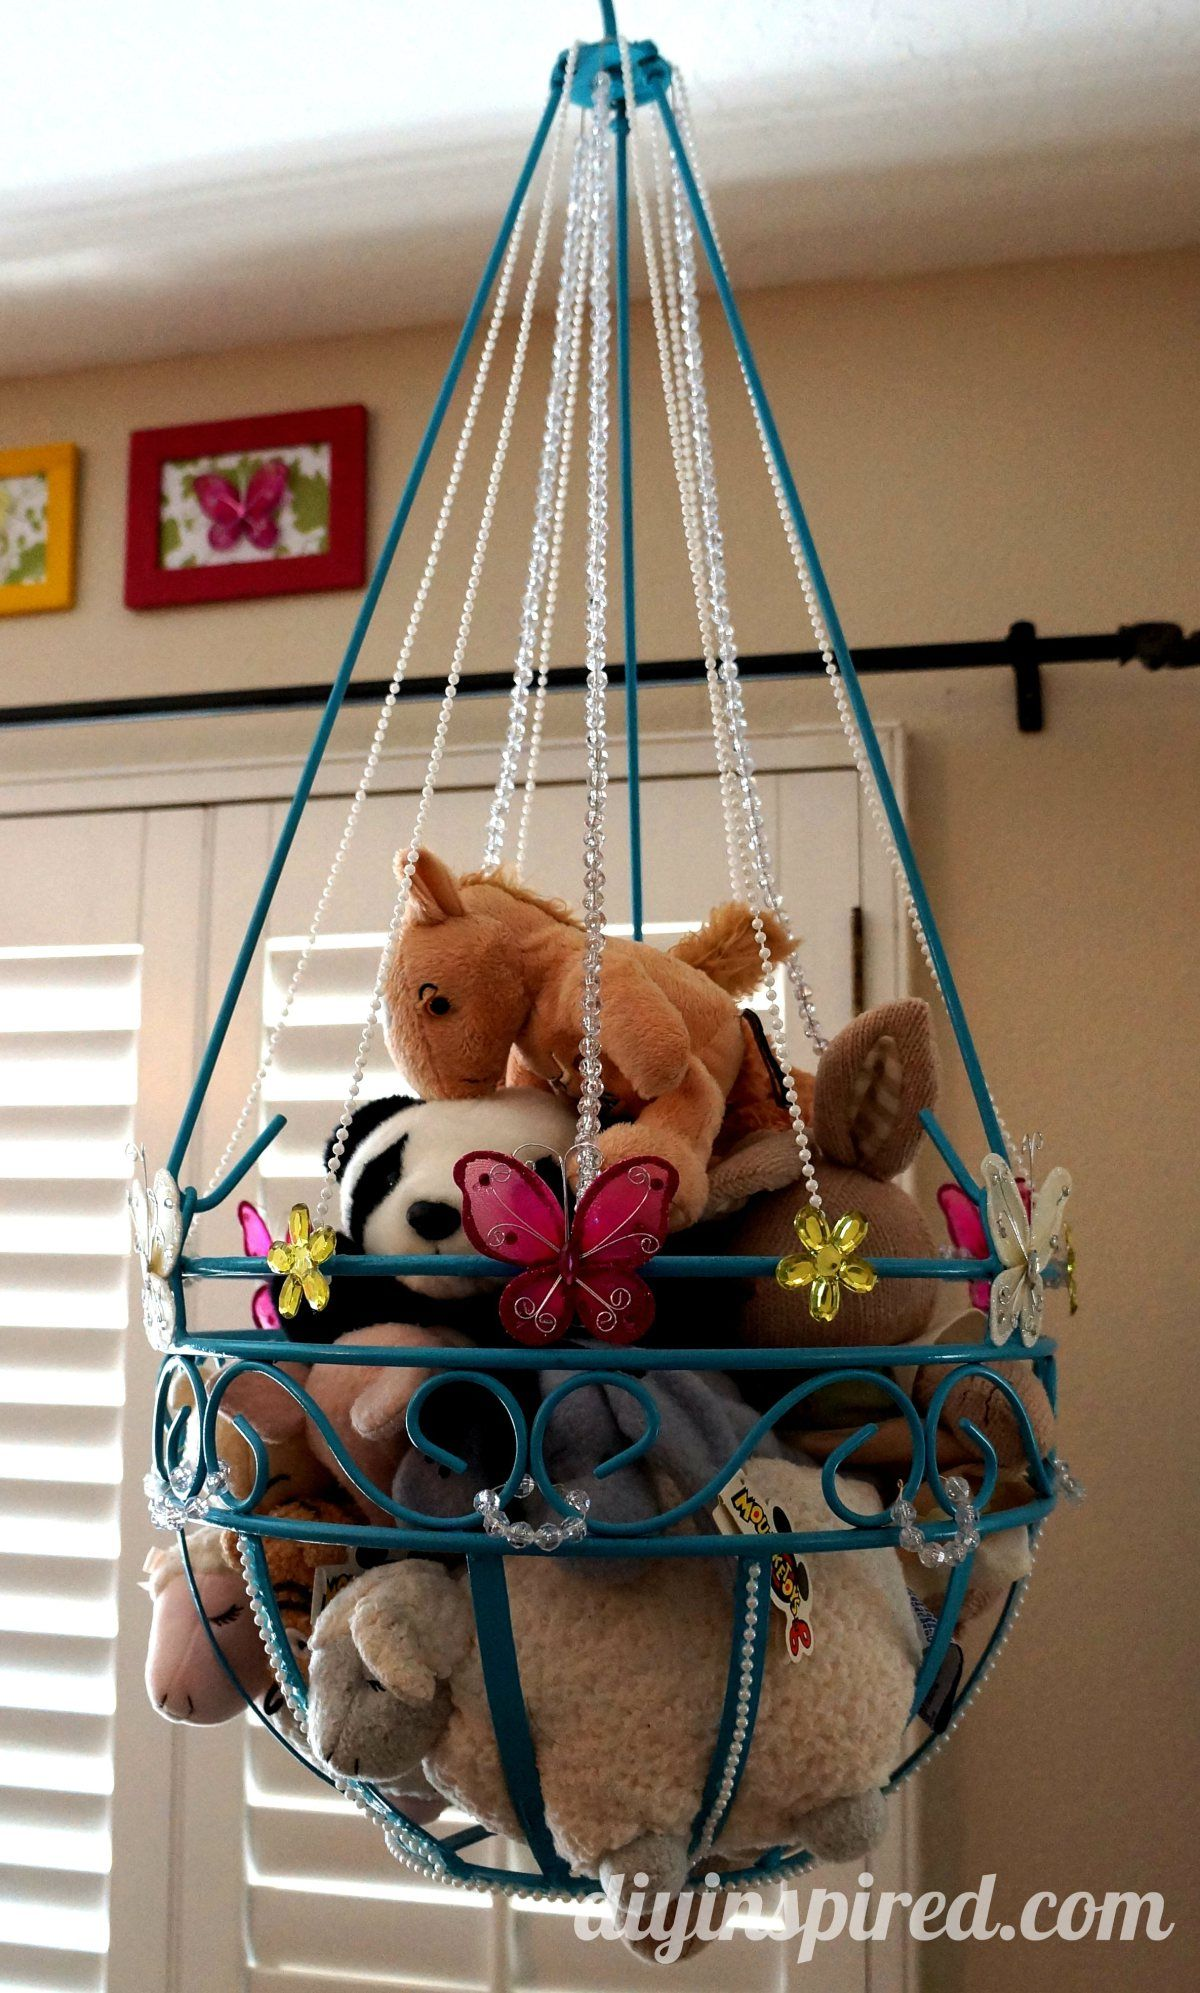 Best Of Diy Inspired Repurposed Plant Hanger Turned Stuffed Animal